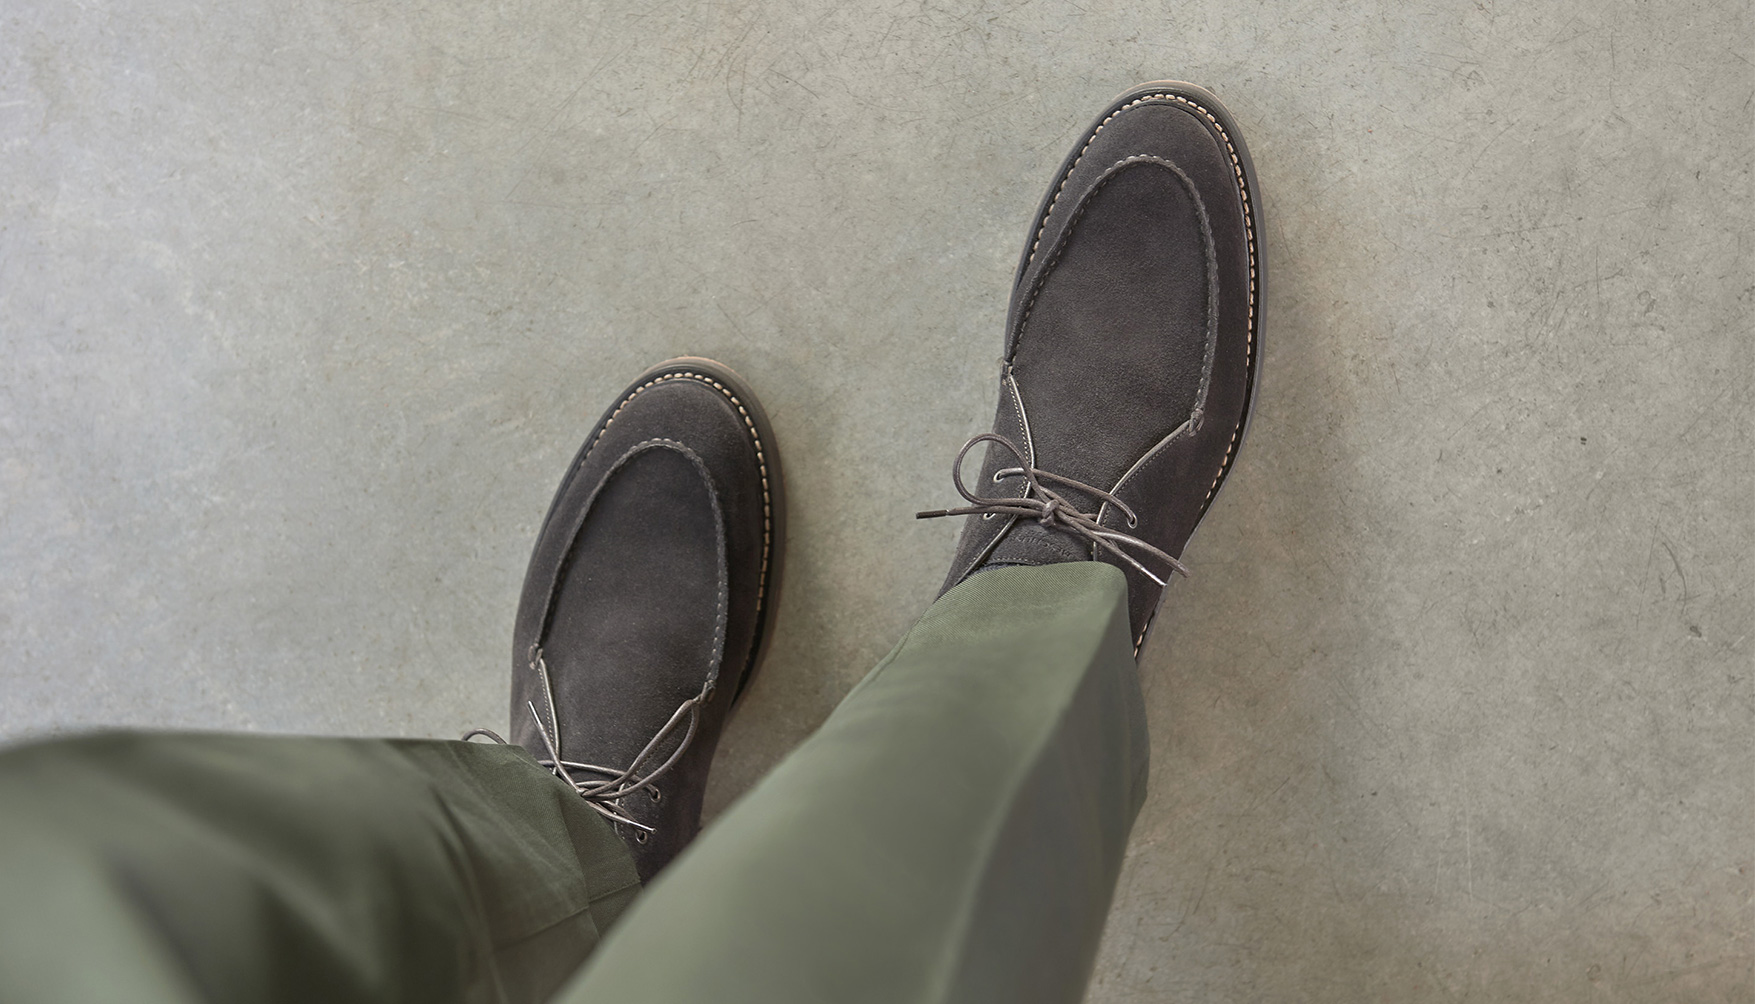 Hydrovelours leather